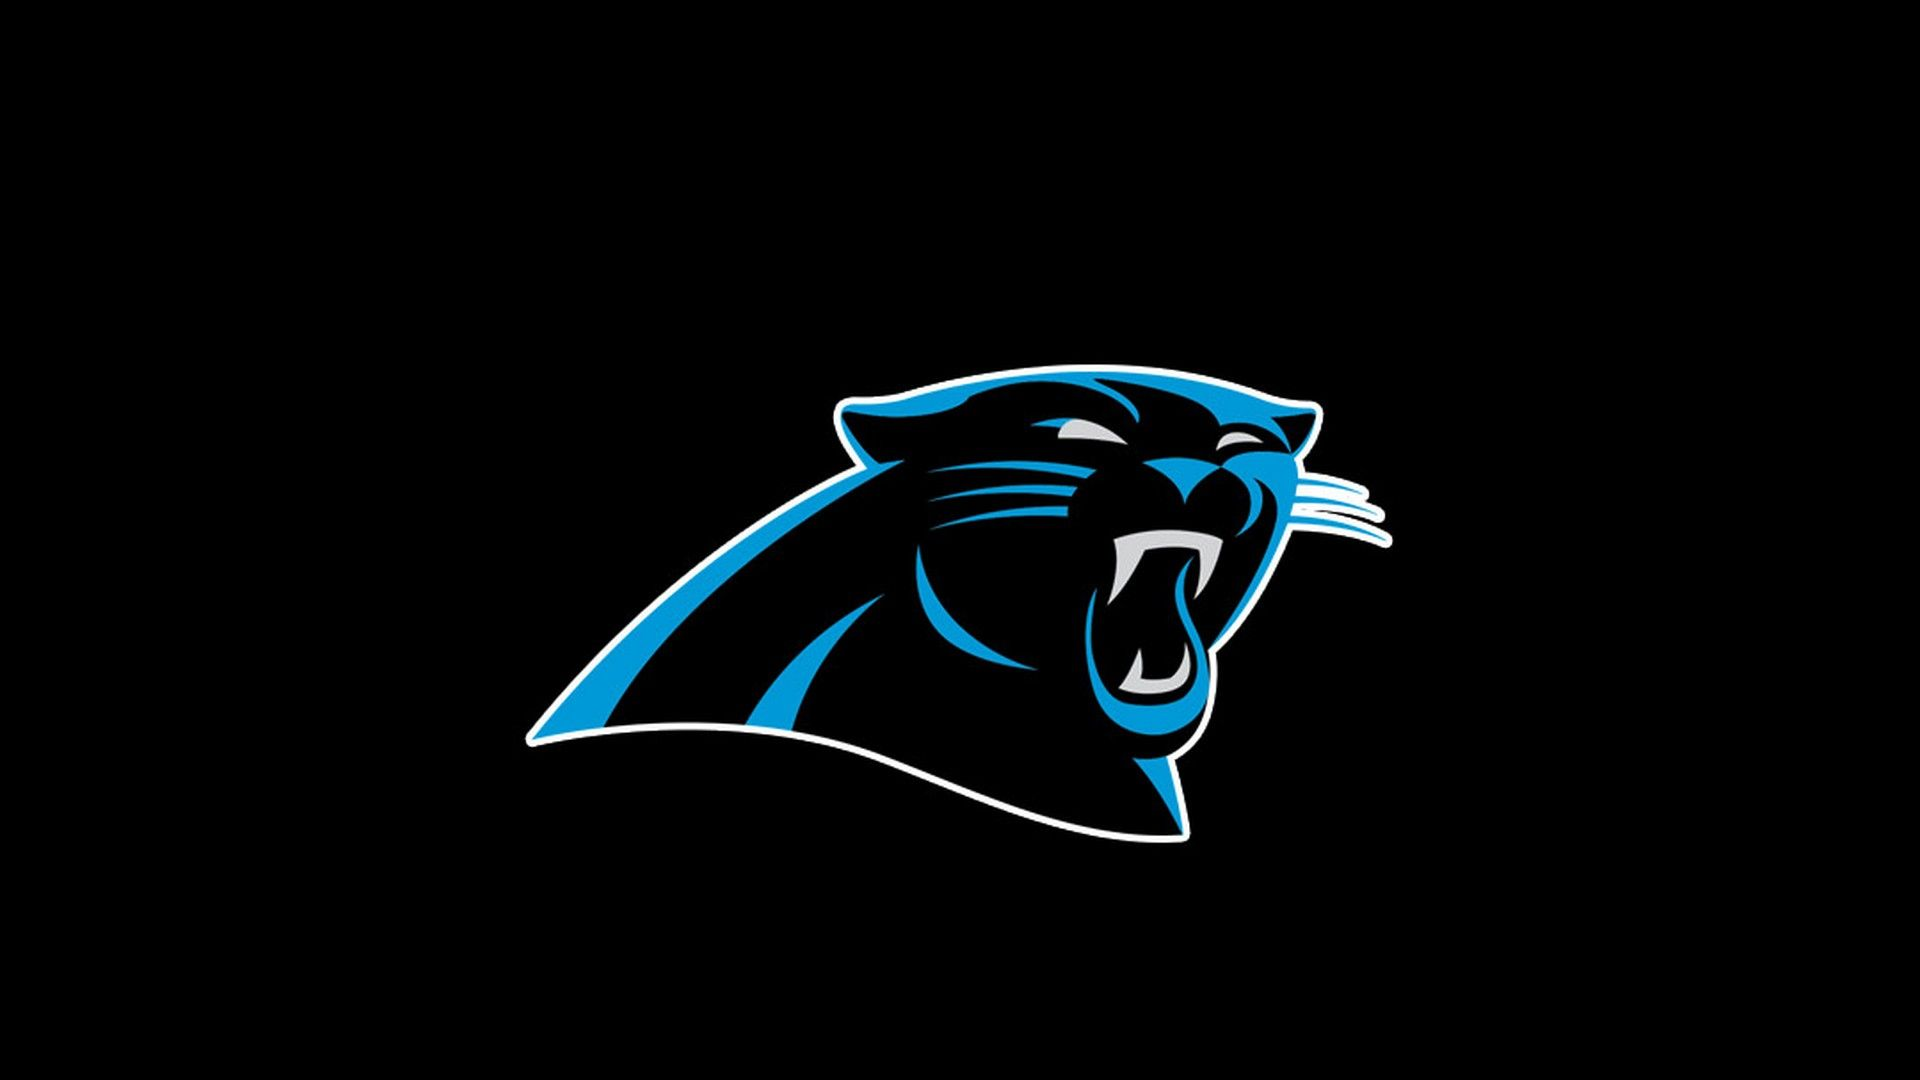 HD Desktop Wallpaper Carolina Panthers Wallpapers Football 1920x1080